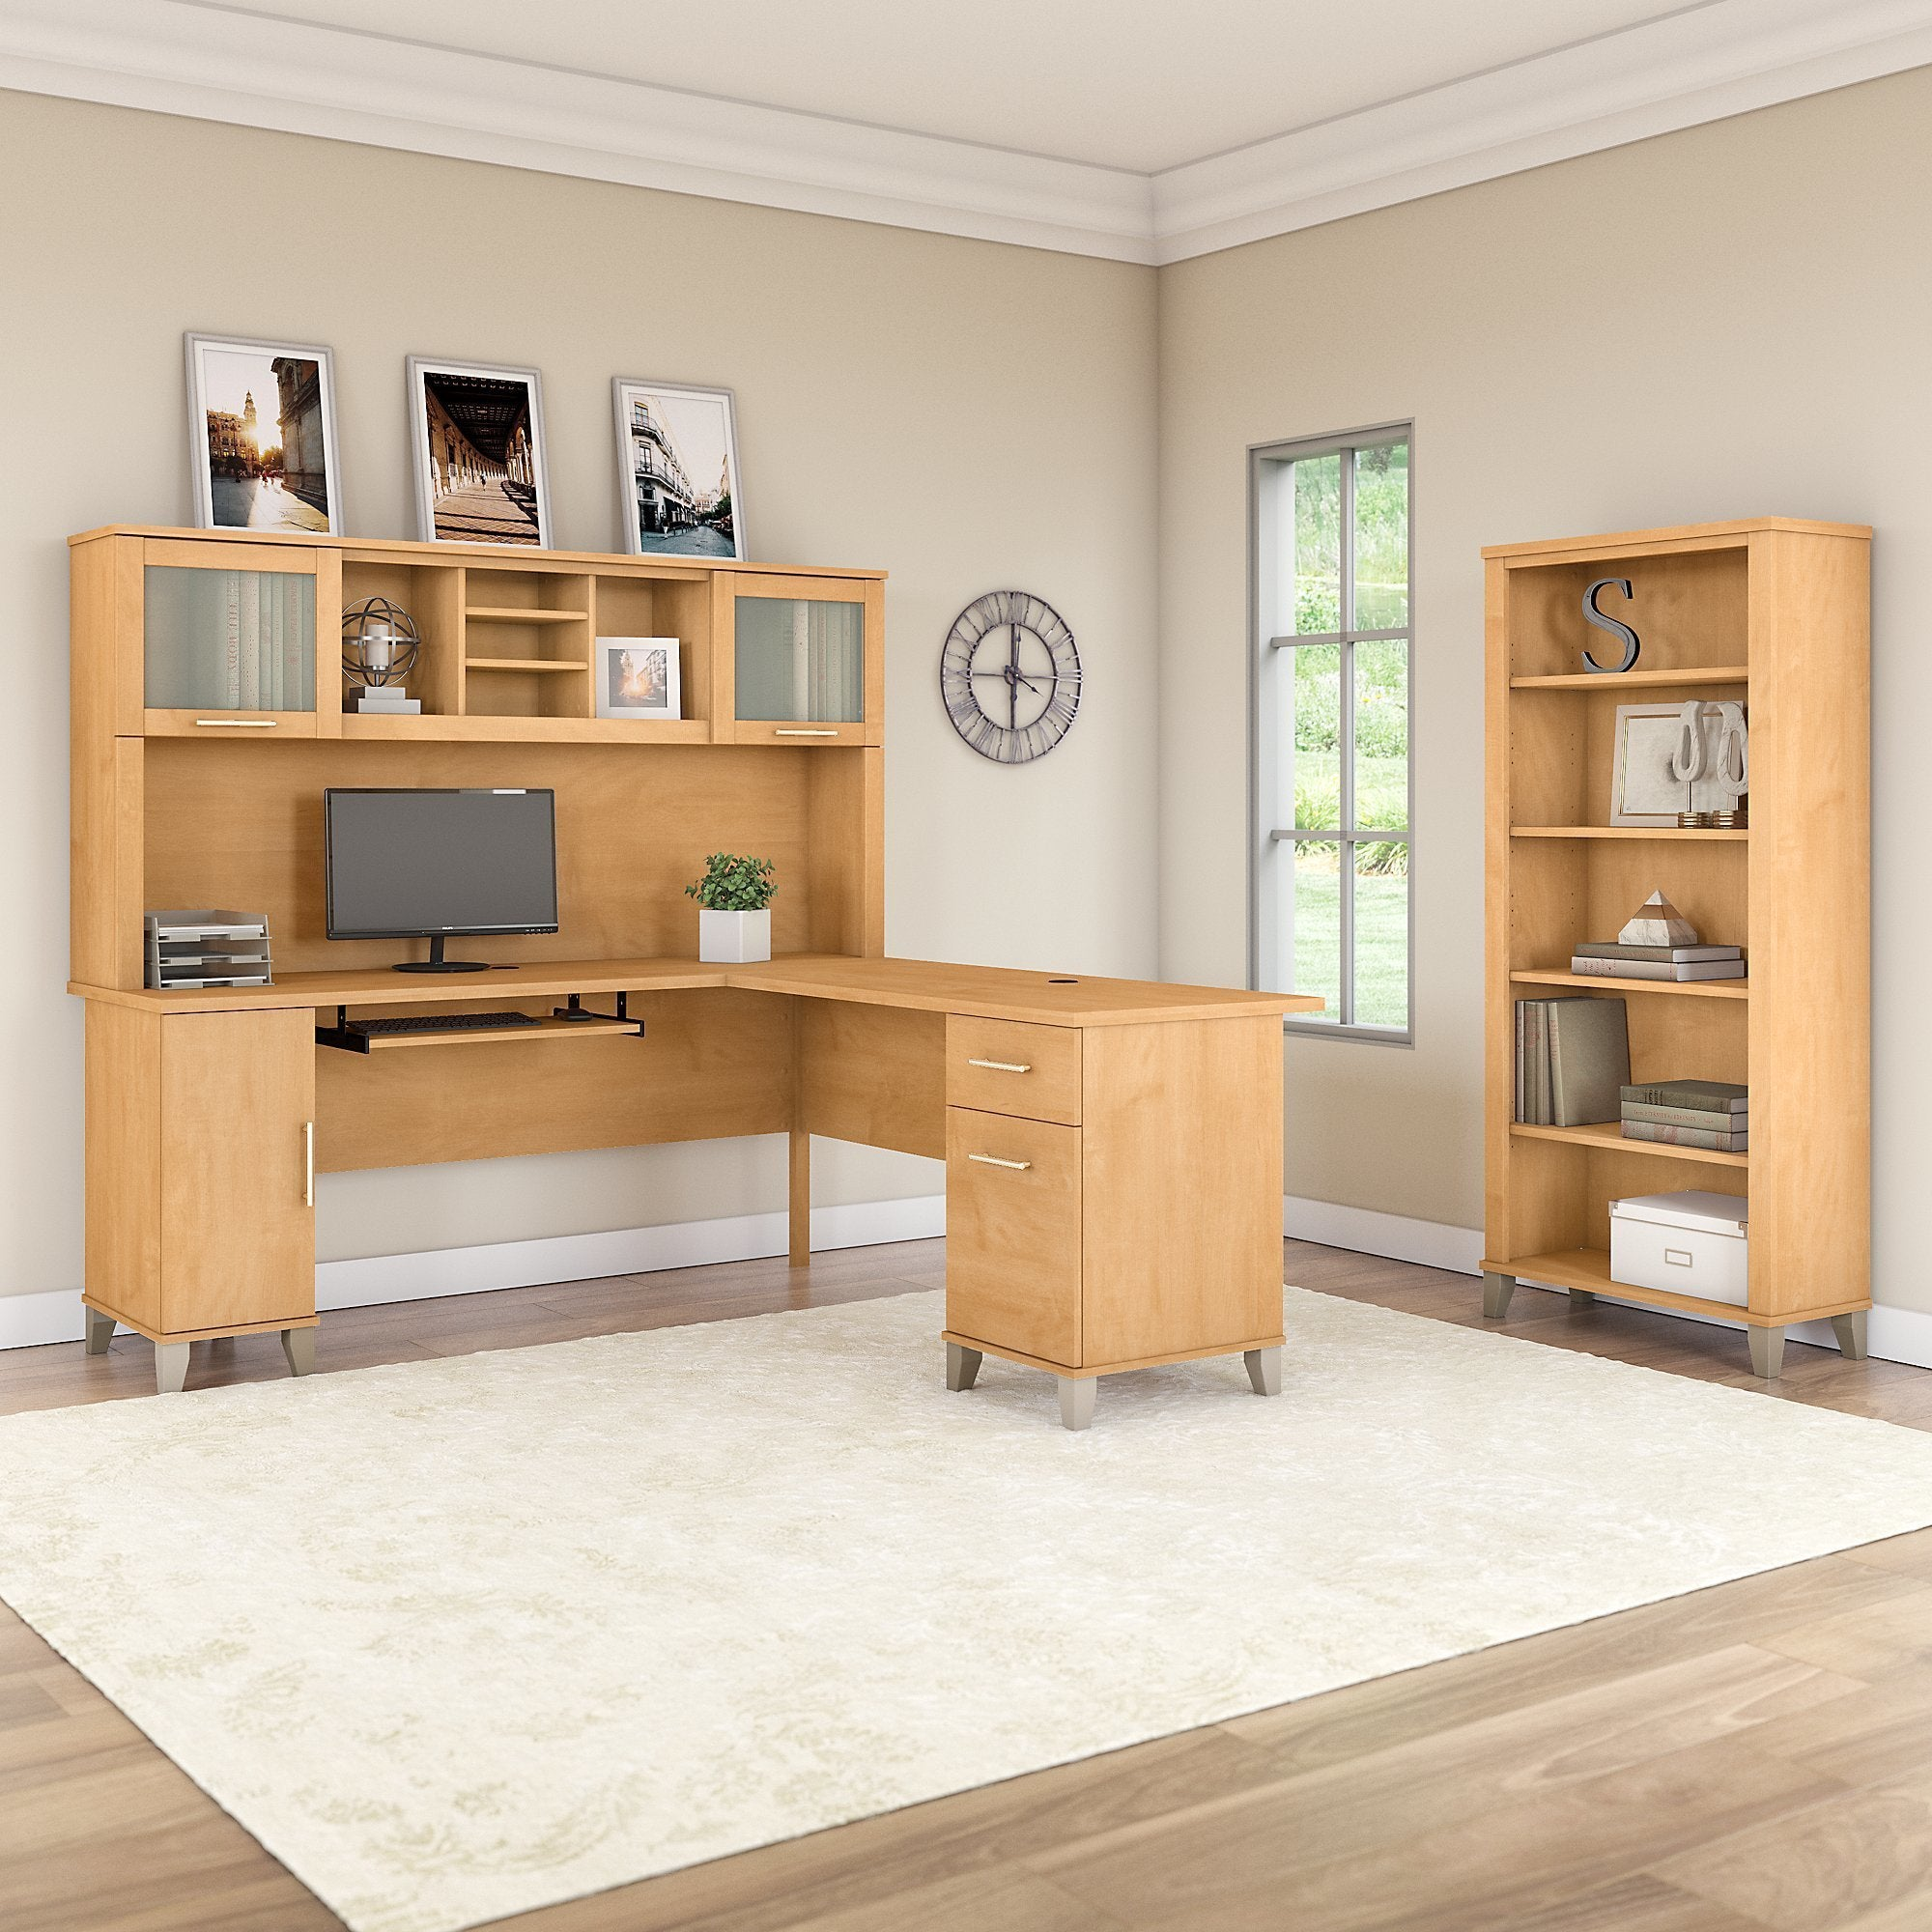 Copper Grove Shumen 32-inch L-shaped Desk with Hutch and Bookcase in Maple